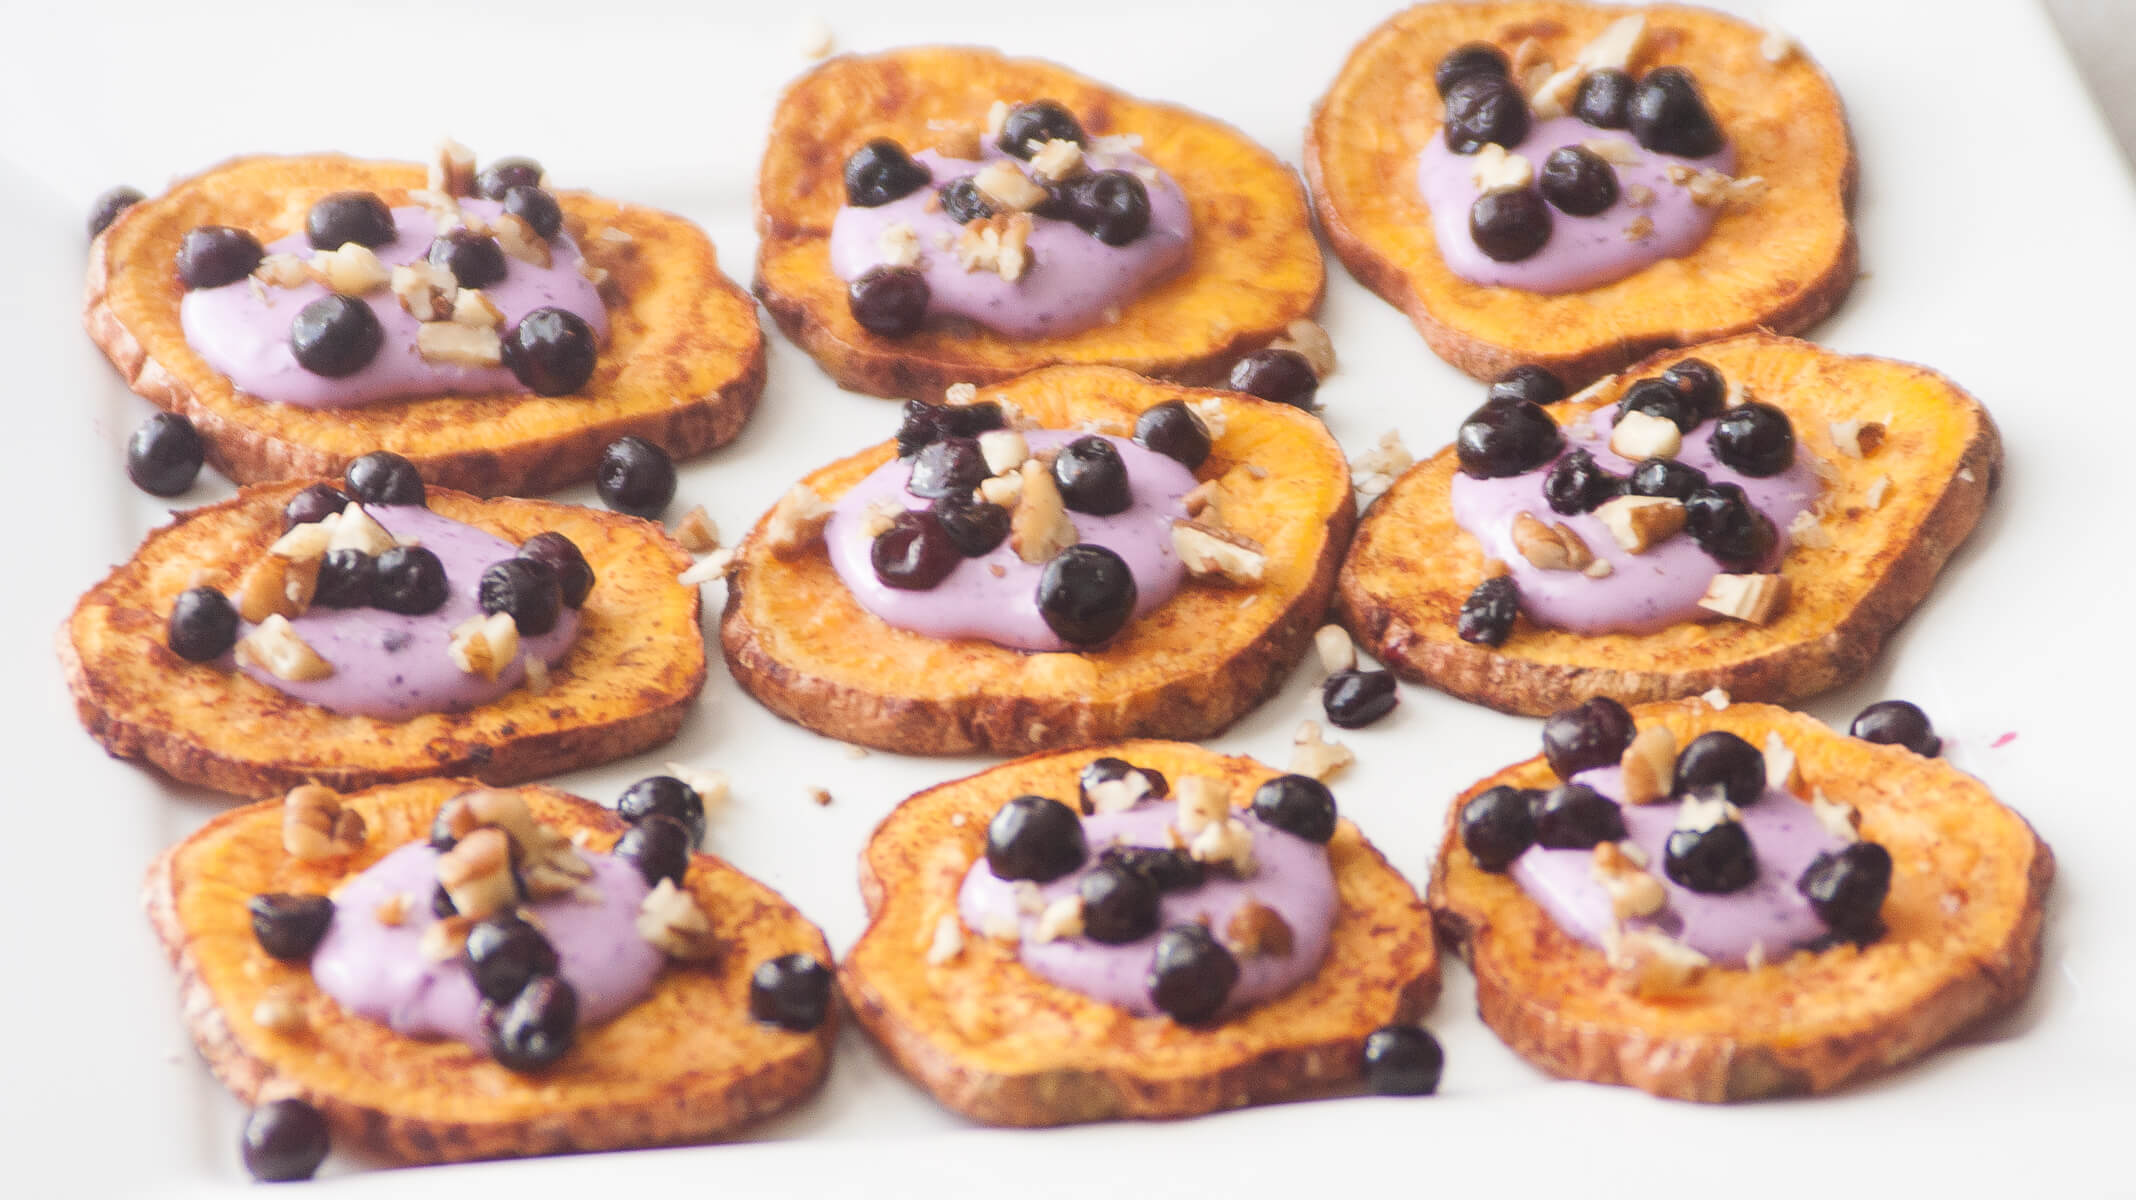 Maple Cinnamon Sweet Potato Coins with Wild Blueberry Goat Cheese Picture